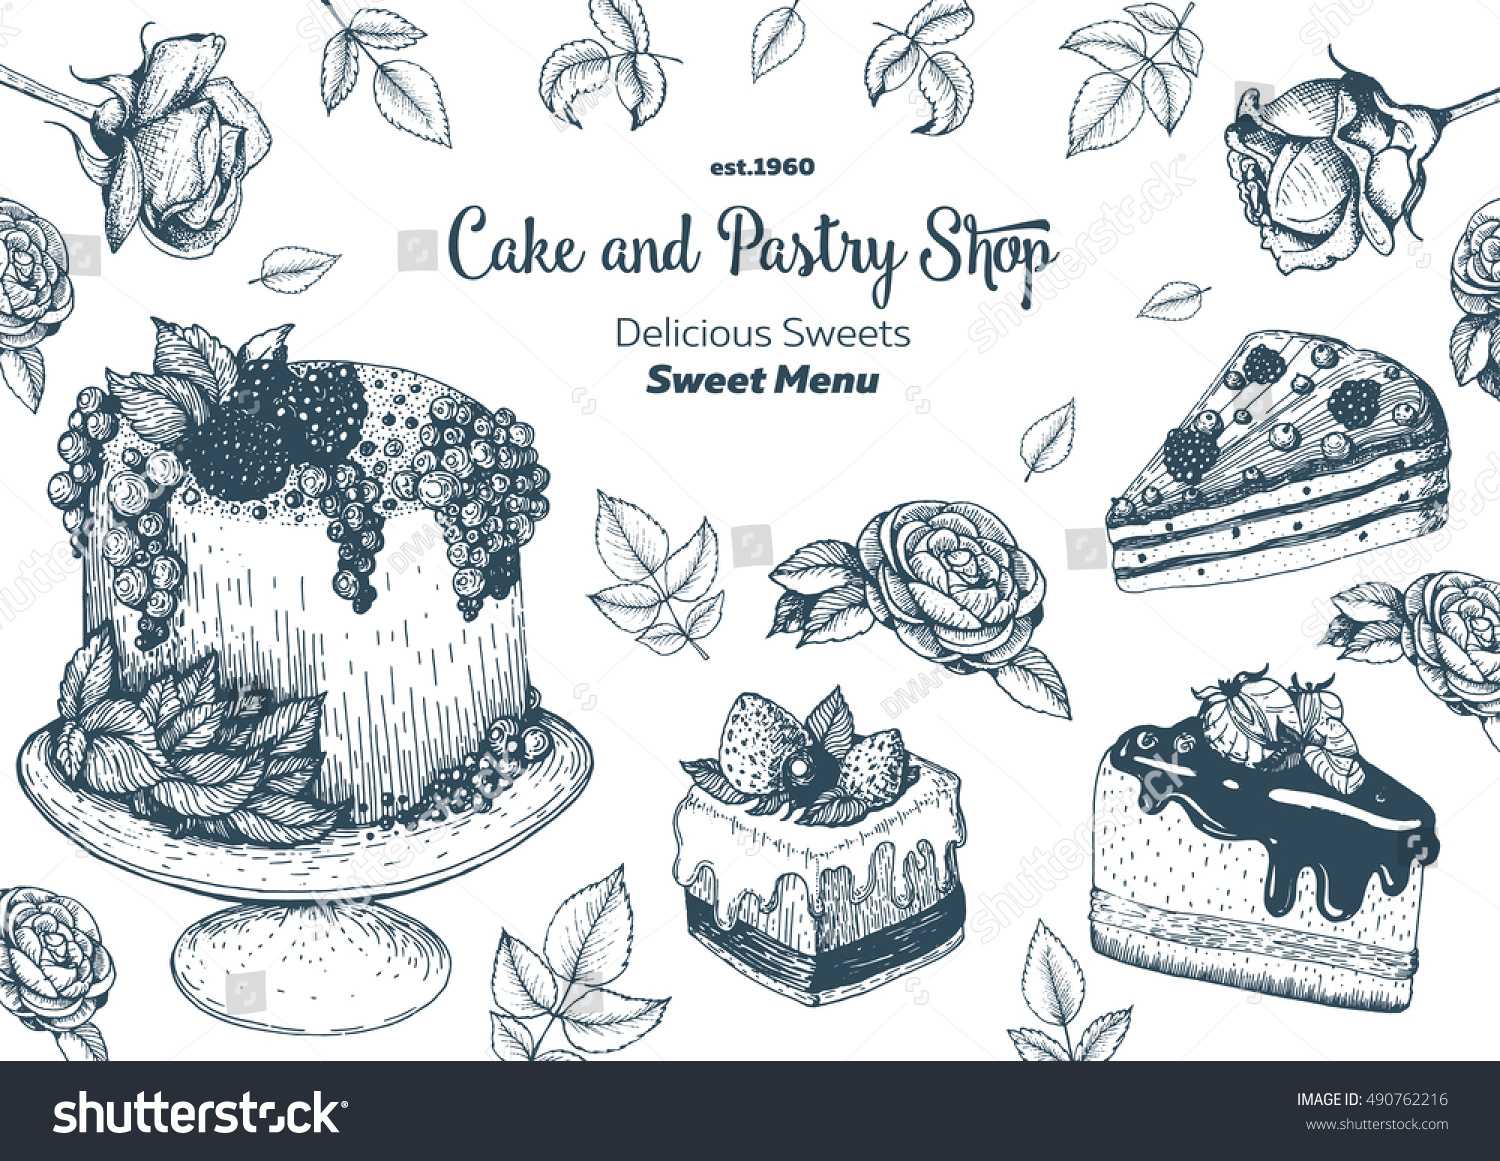 Vector Design Ink Hand Drawn Cake Stock Vector (Royalty Free ...